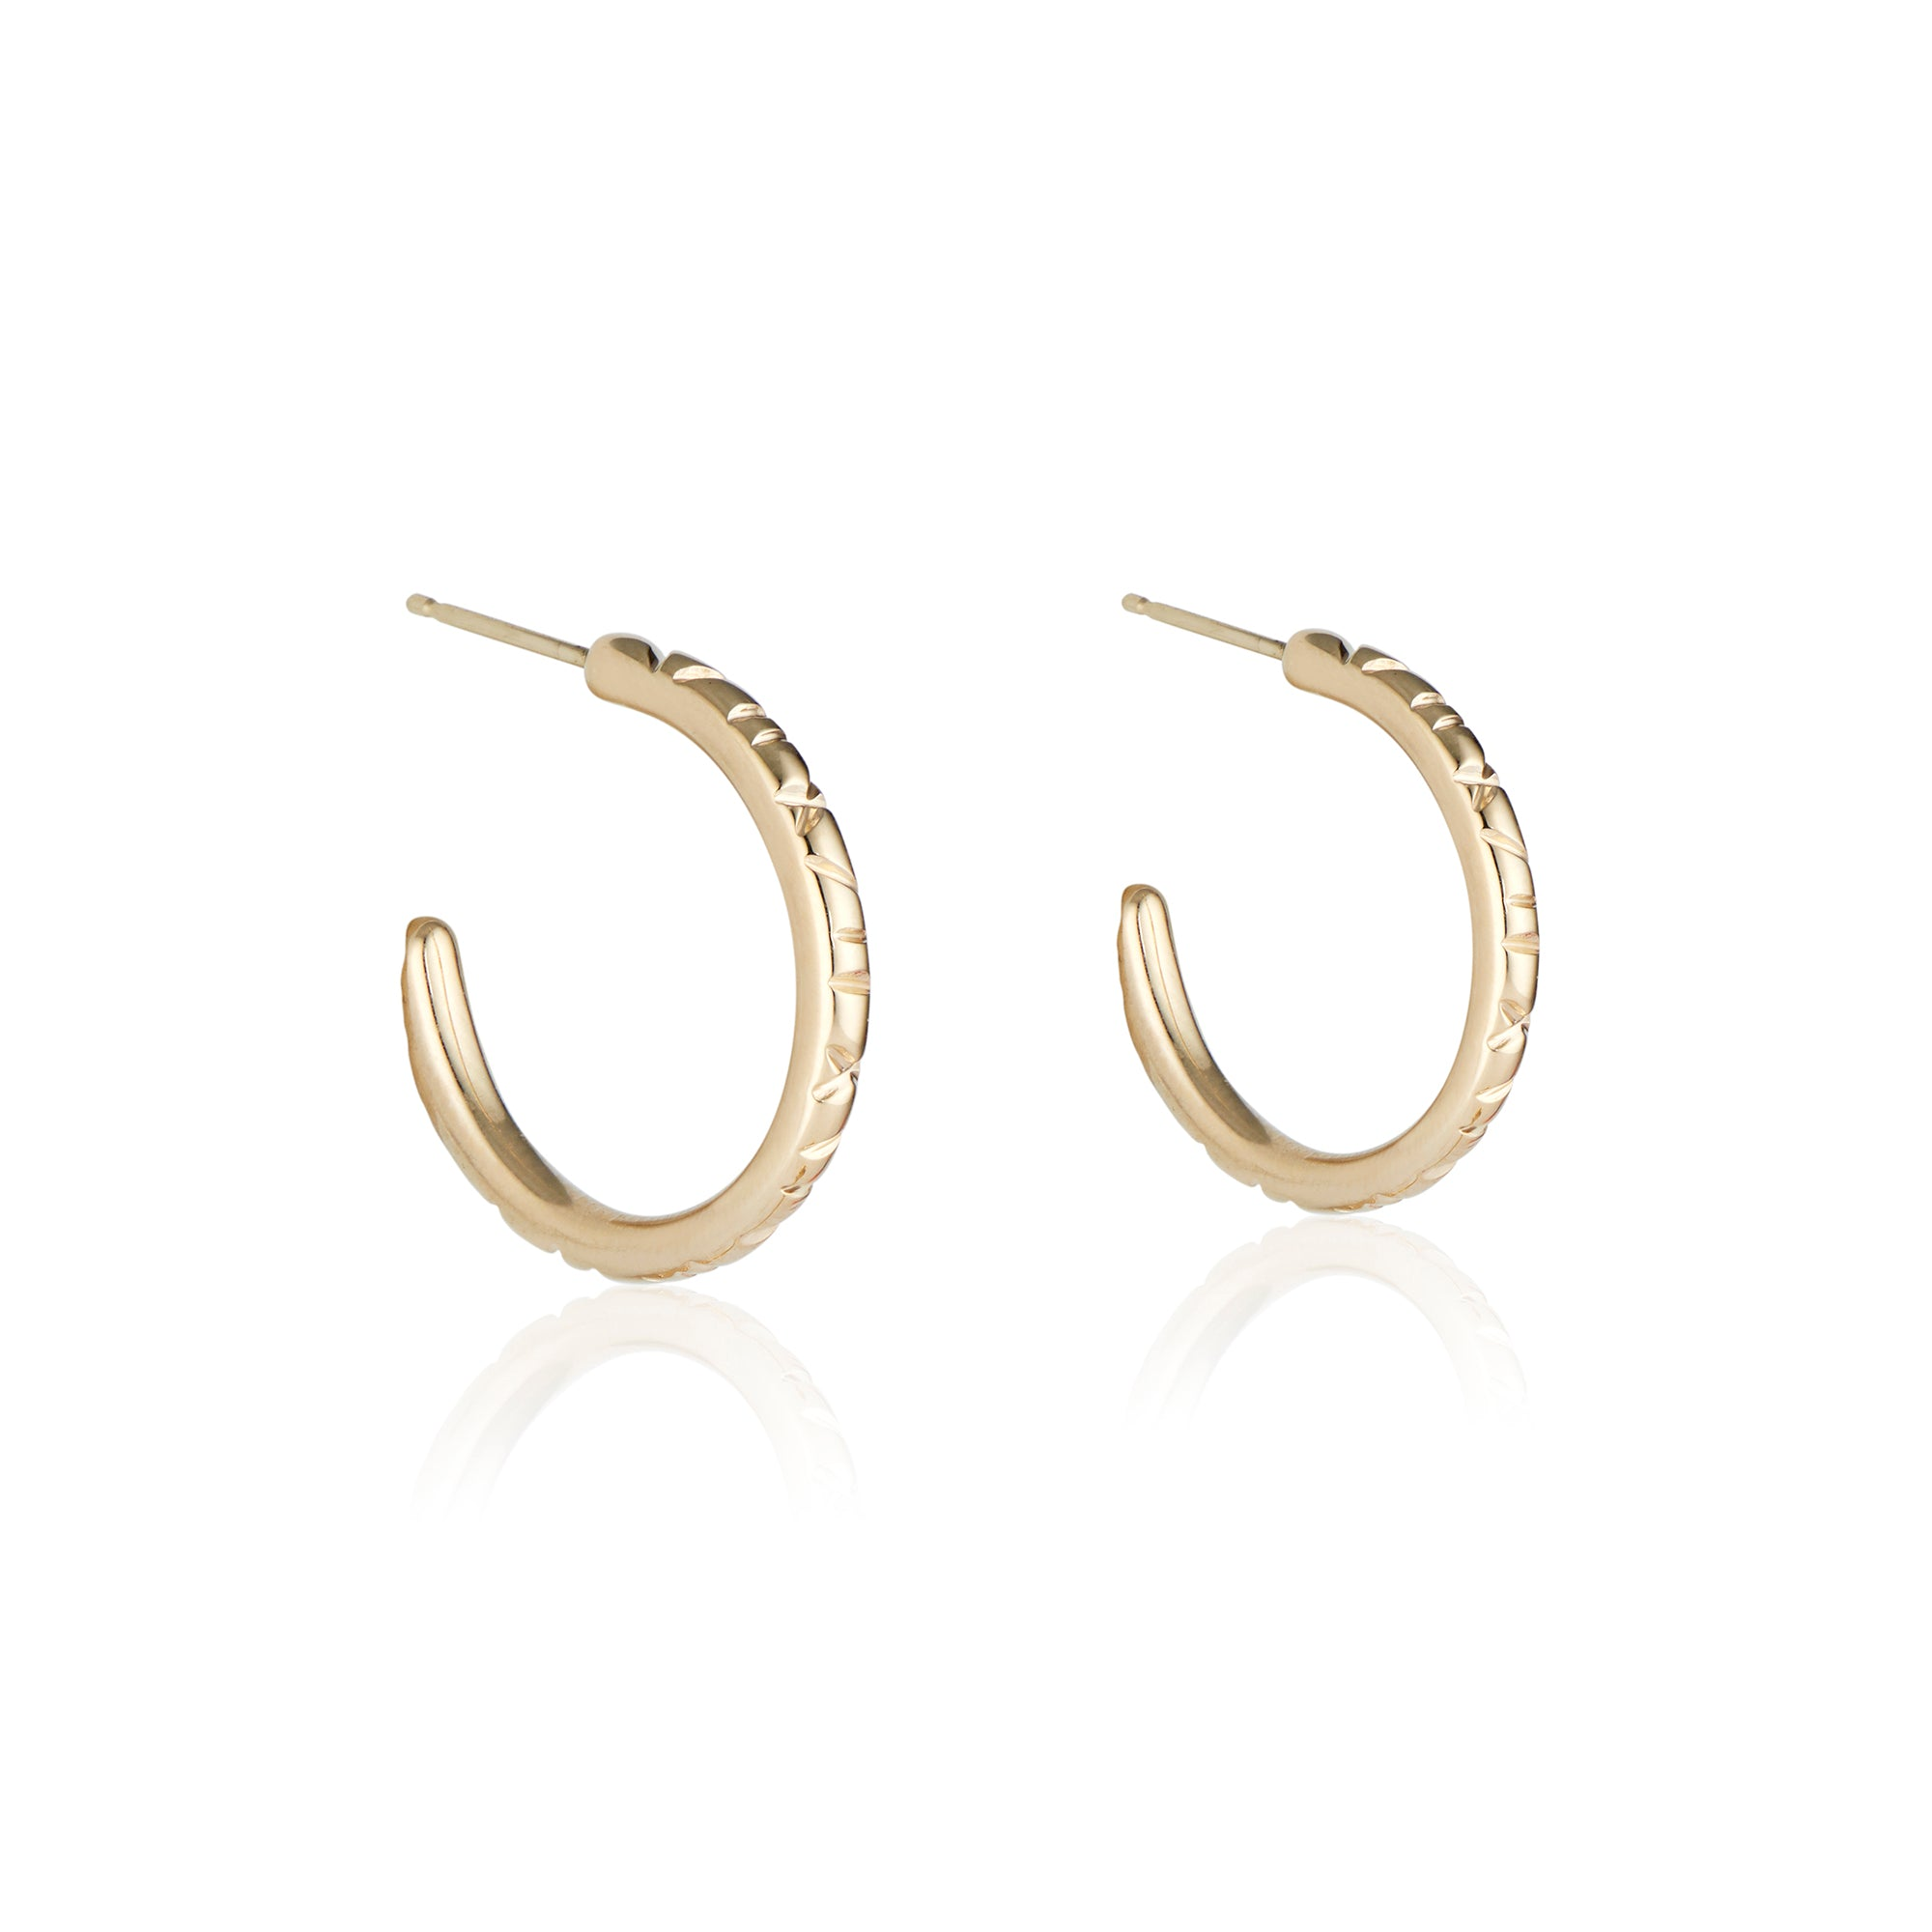 tiny gold hoops, solid gold earrings, natalie mcmillan jewelry, gold hoop earrings, solid gold earrings, holiday gift ideas, gifts for bridesmaids, los angeles style, earrings for any occasion, statement earrings